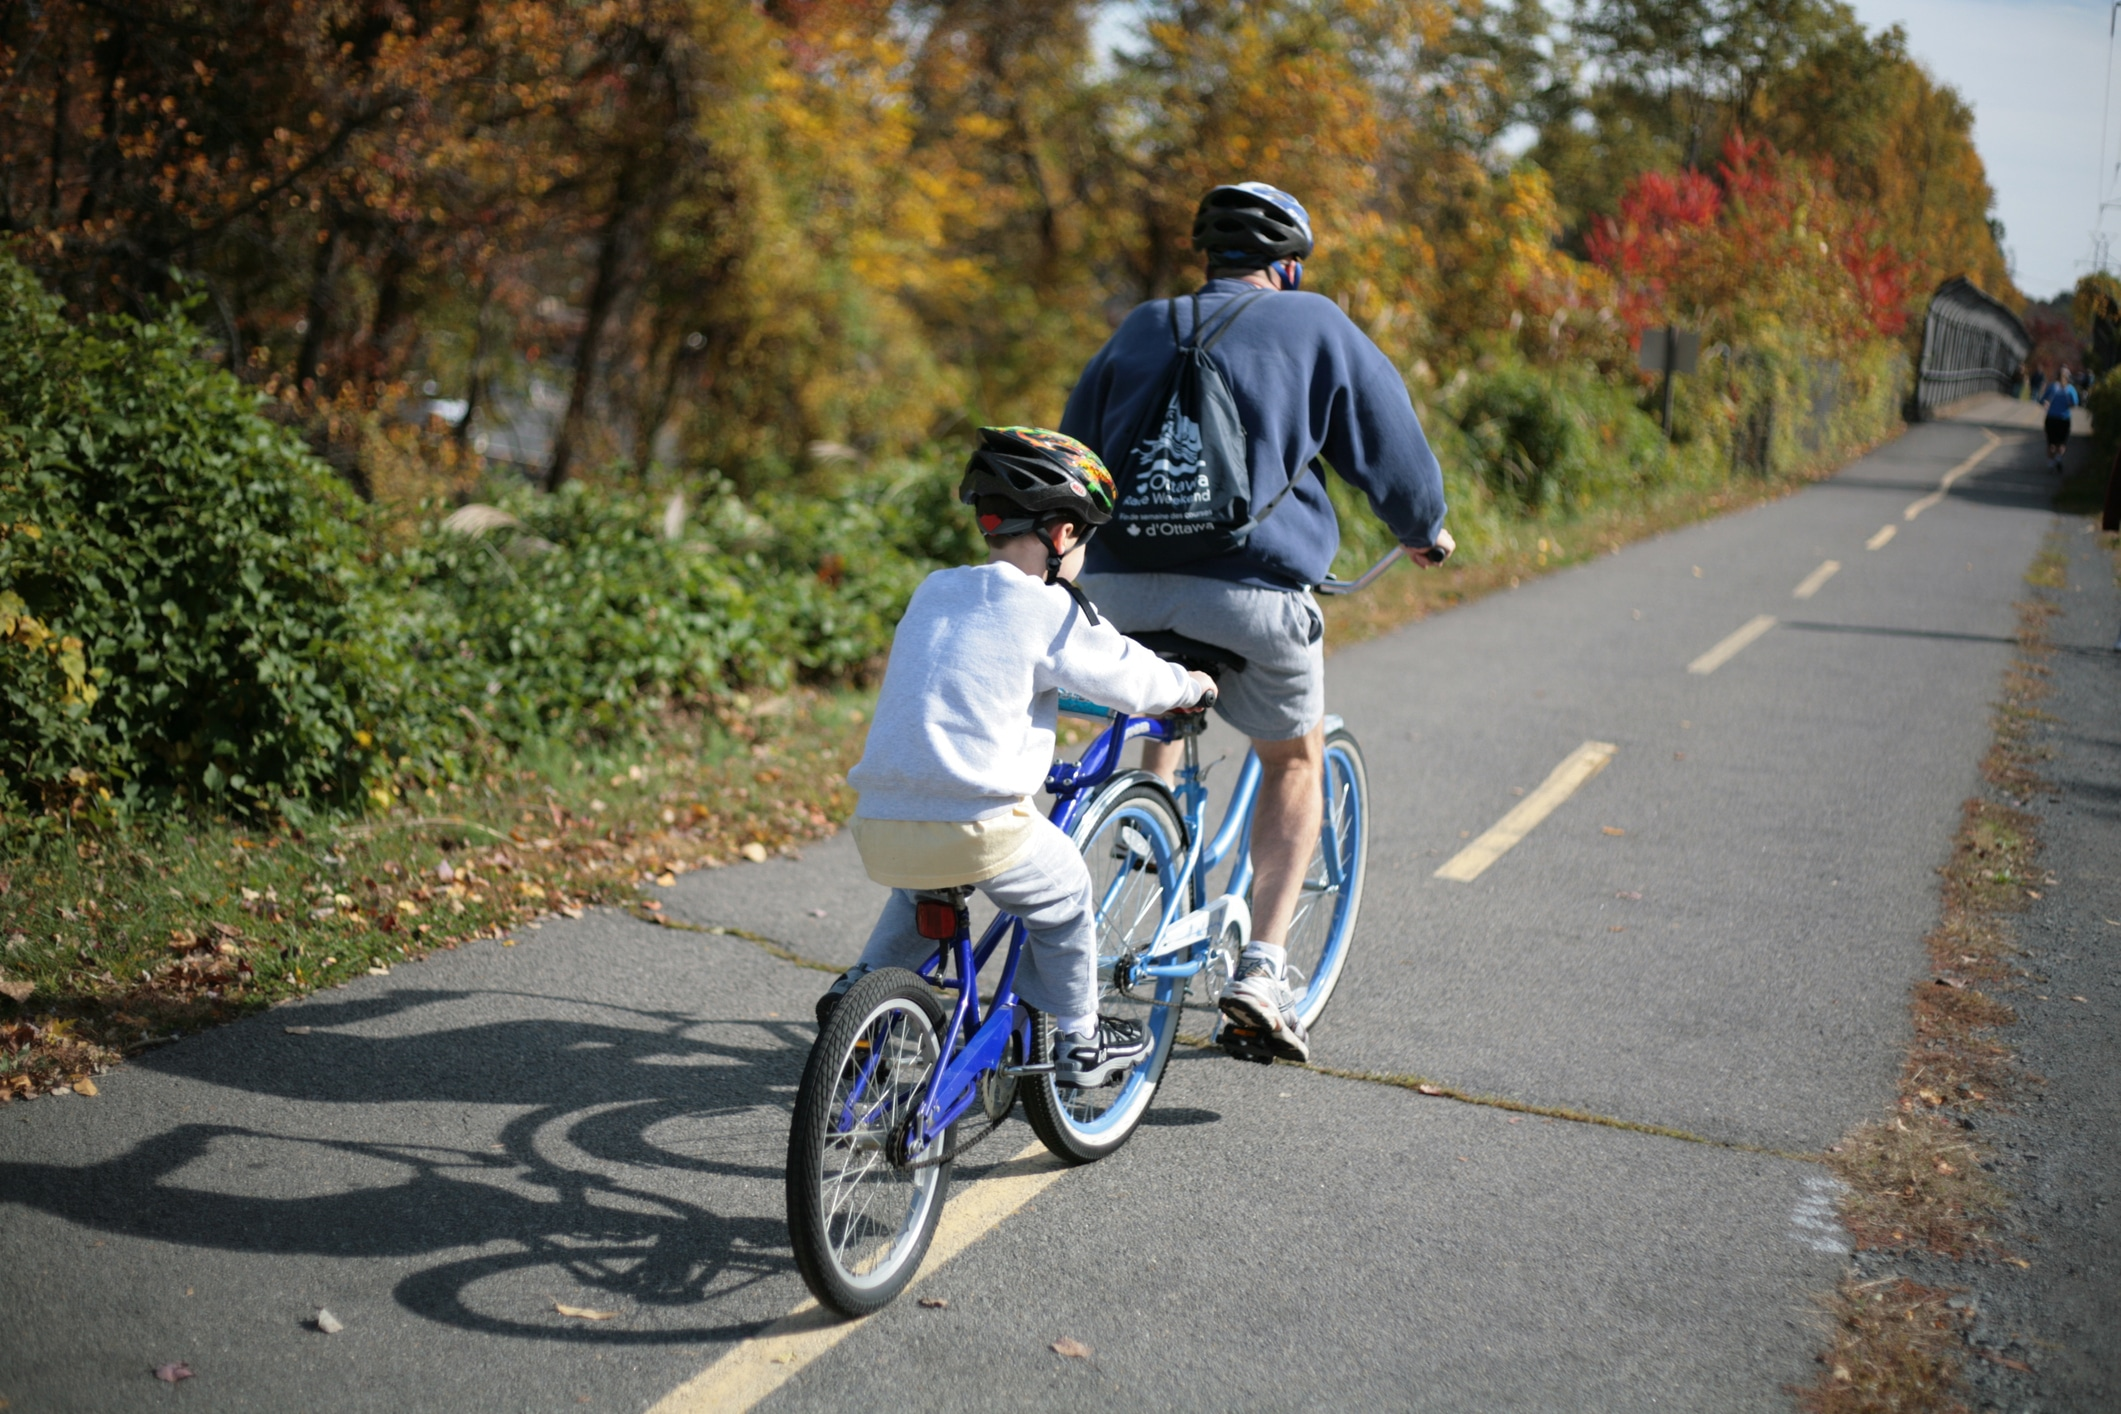 A father and son biking